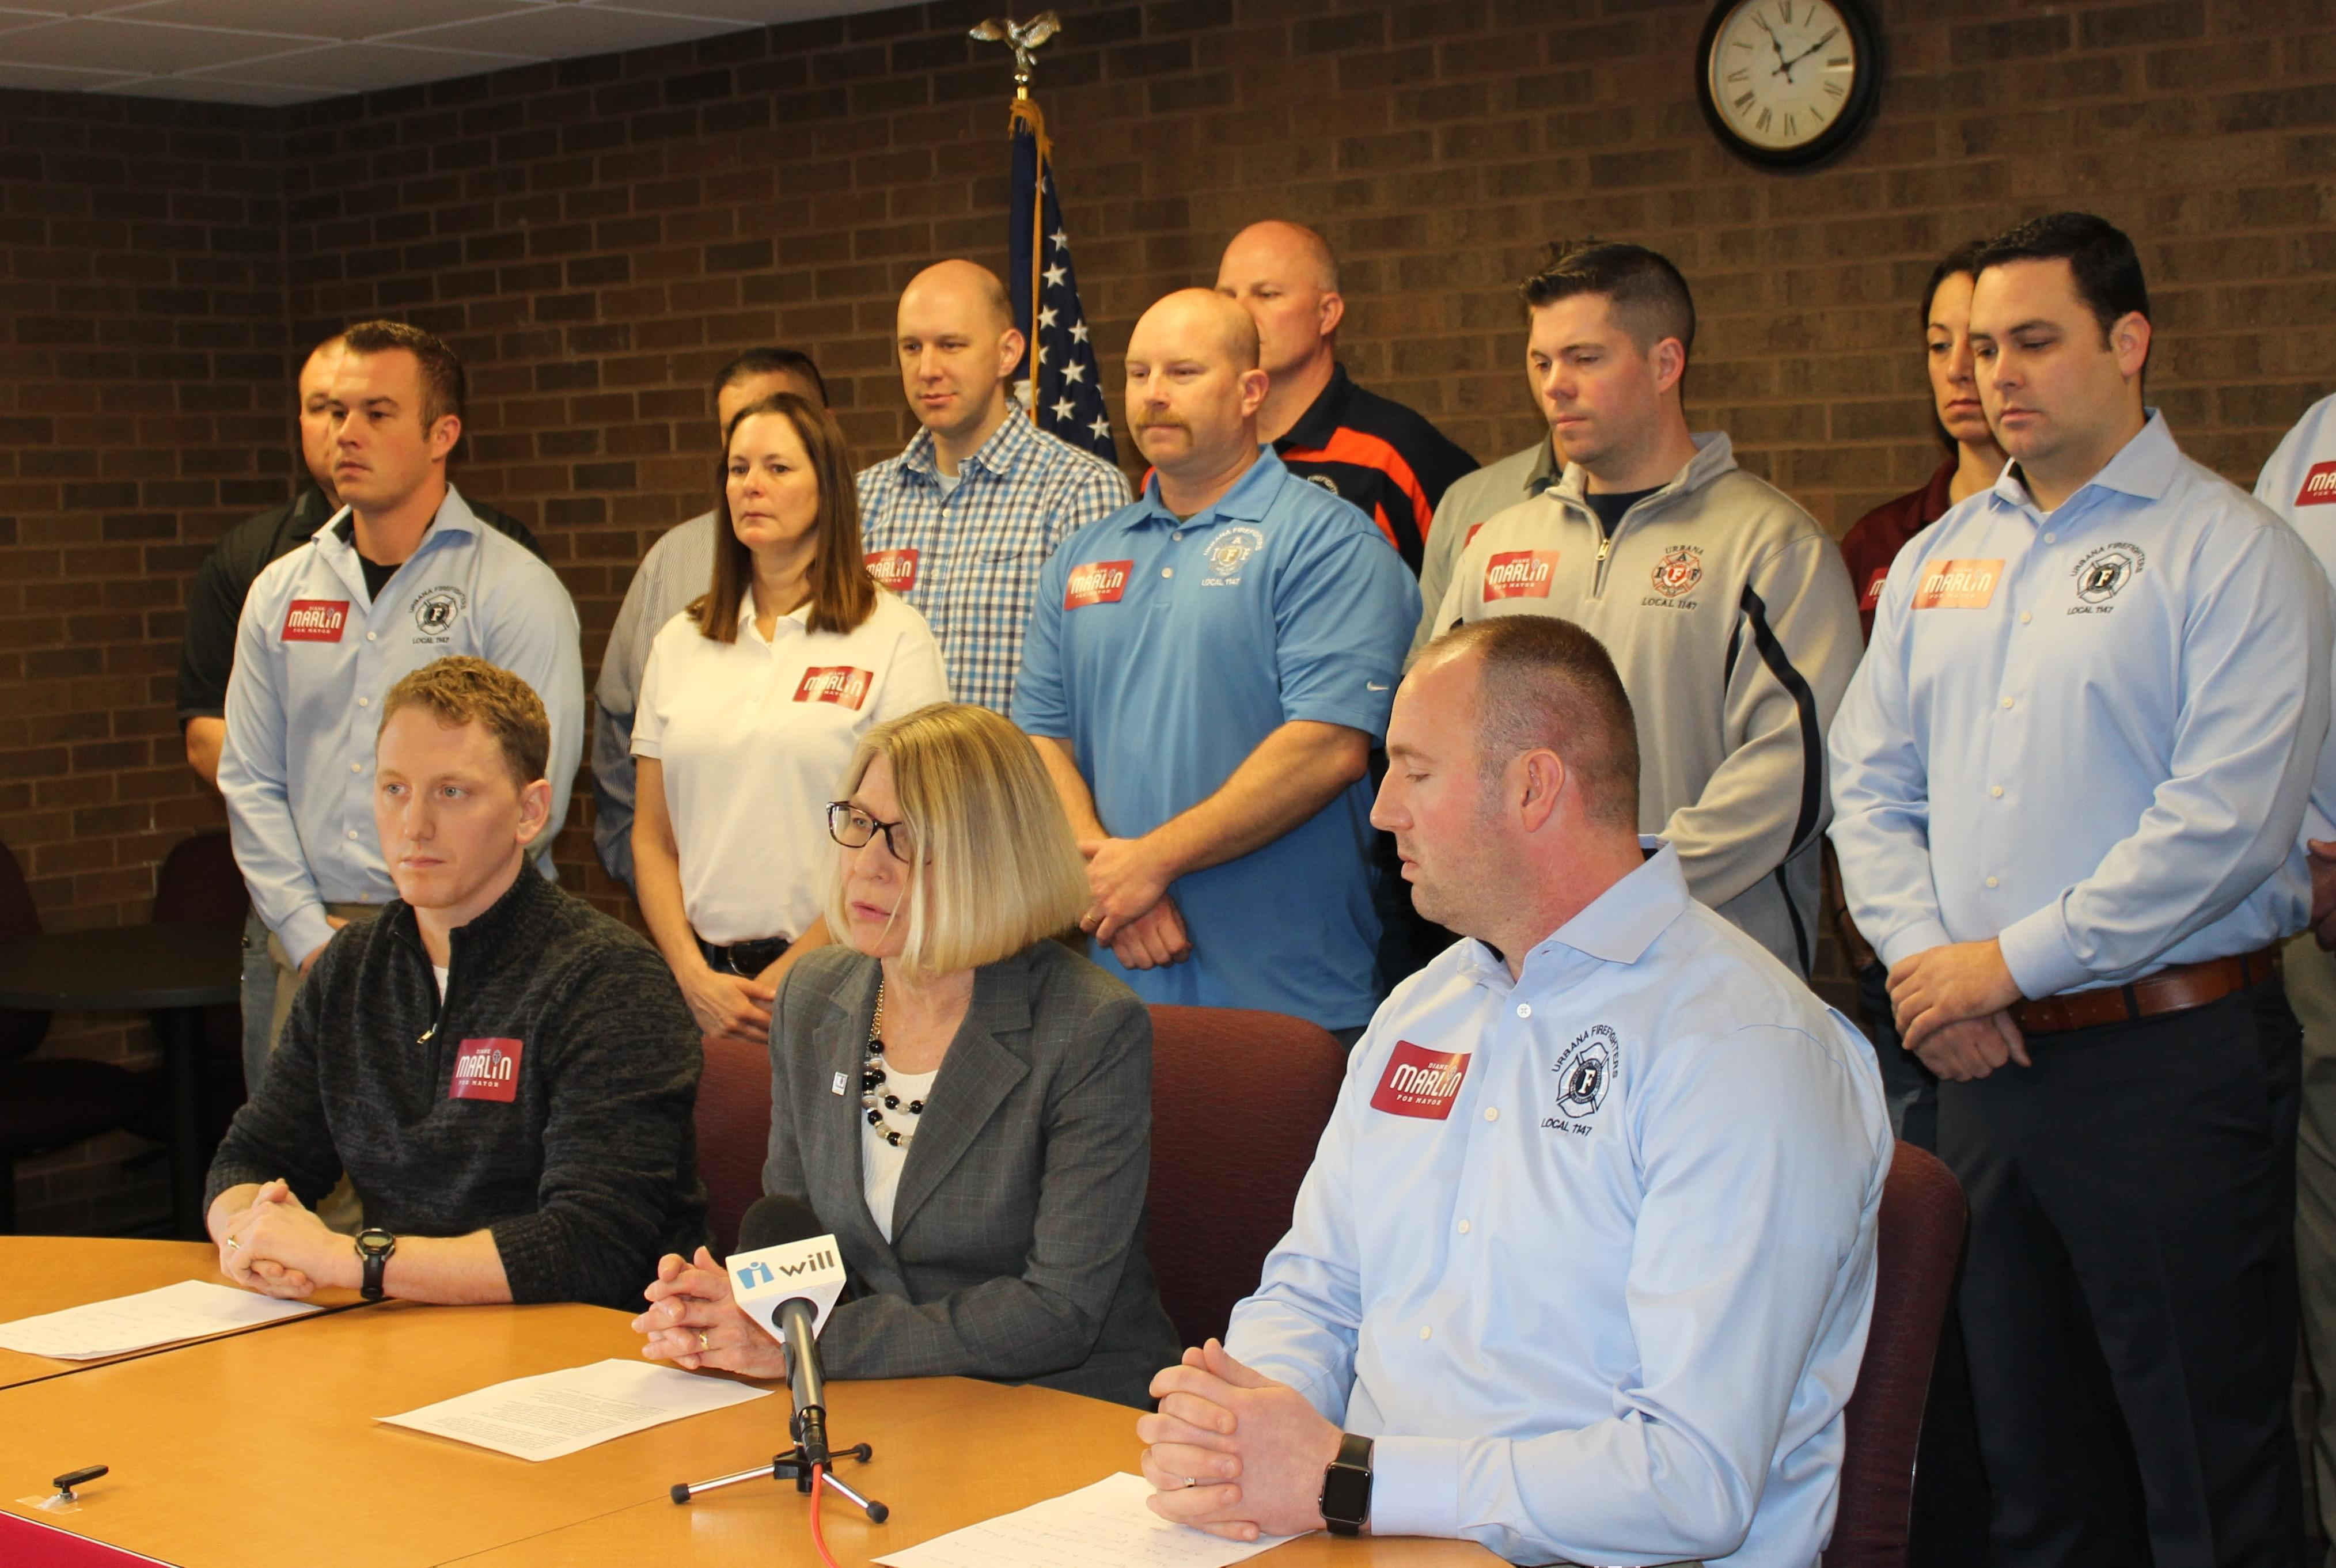 Urbana Alderwoman Diane Marlin meets with the city's local police and firefighters unions at the Illinois Law Enforcement Alarm System Building in Urbana Monday.